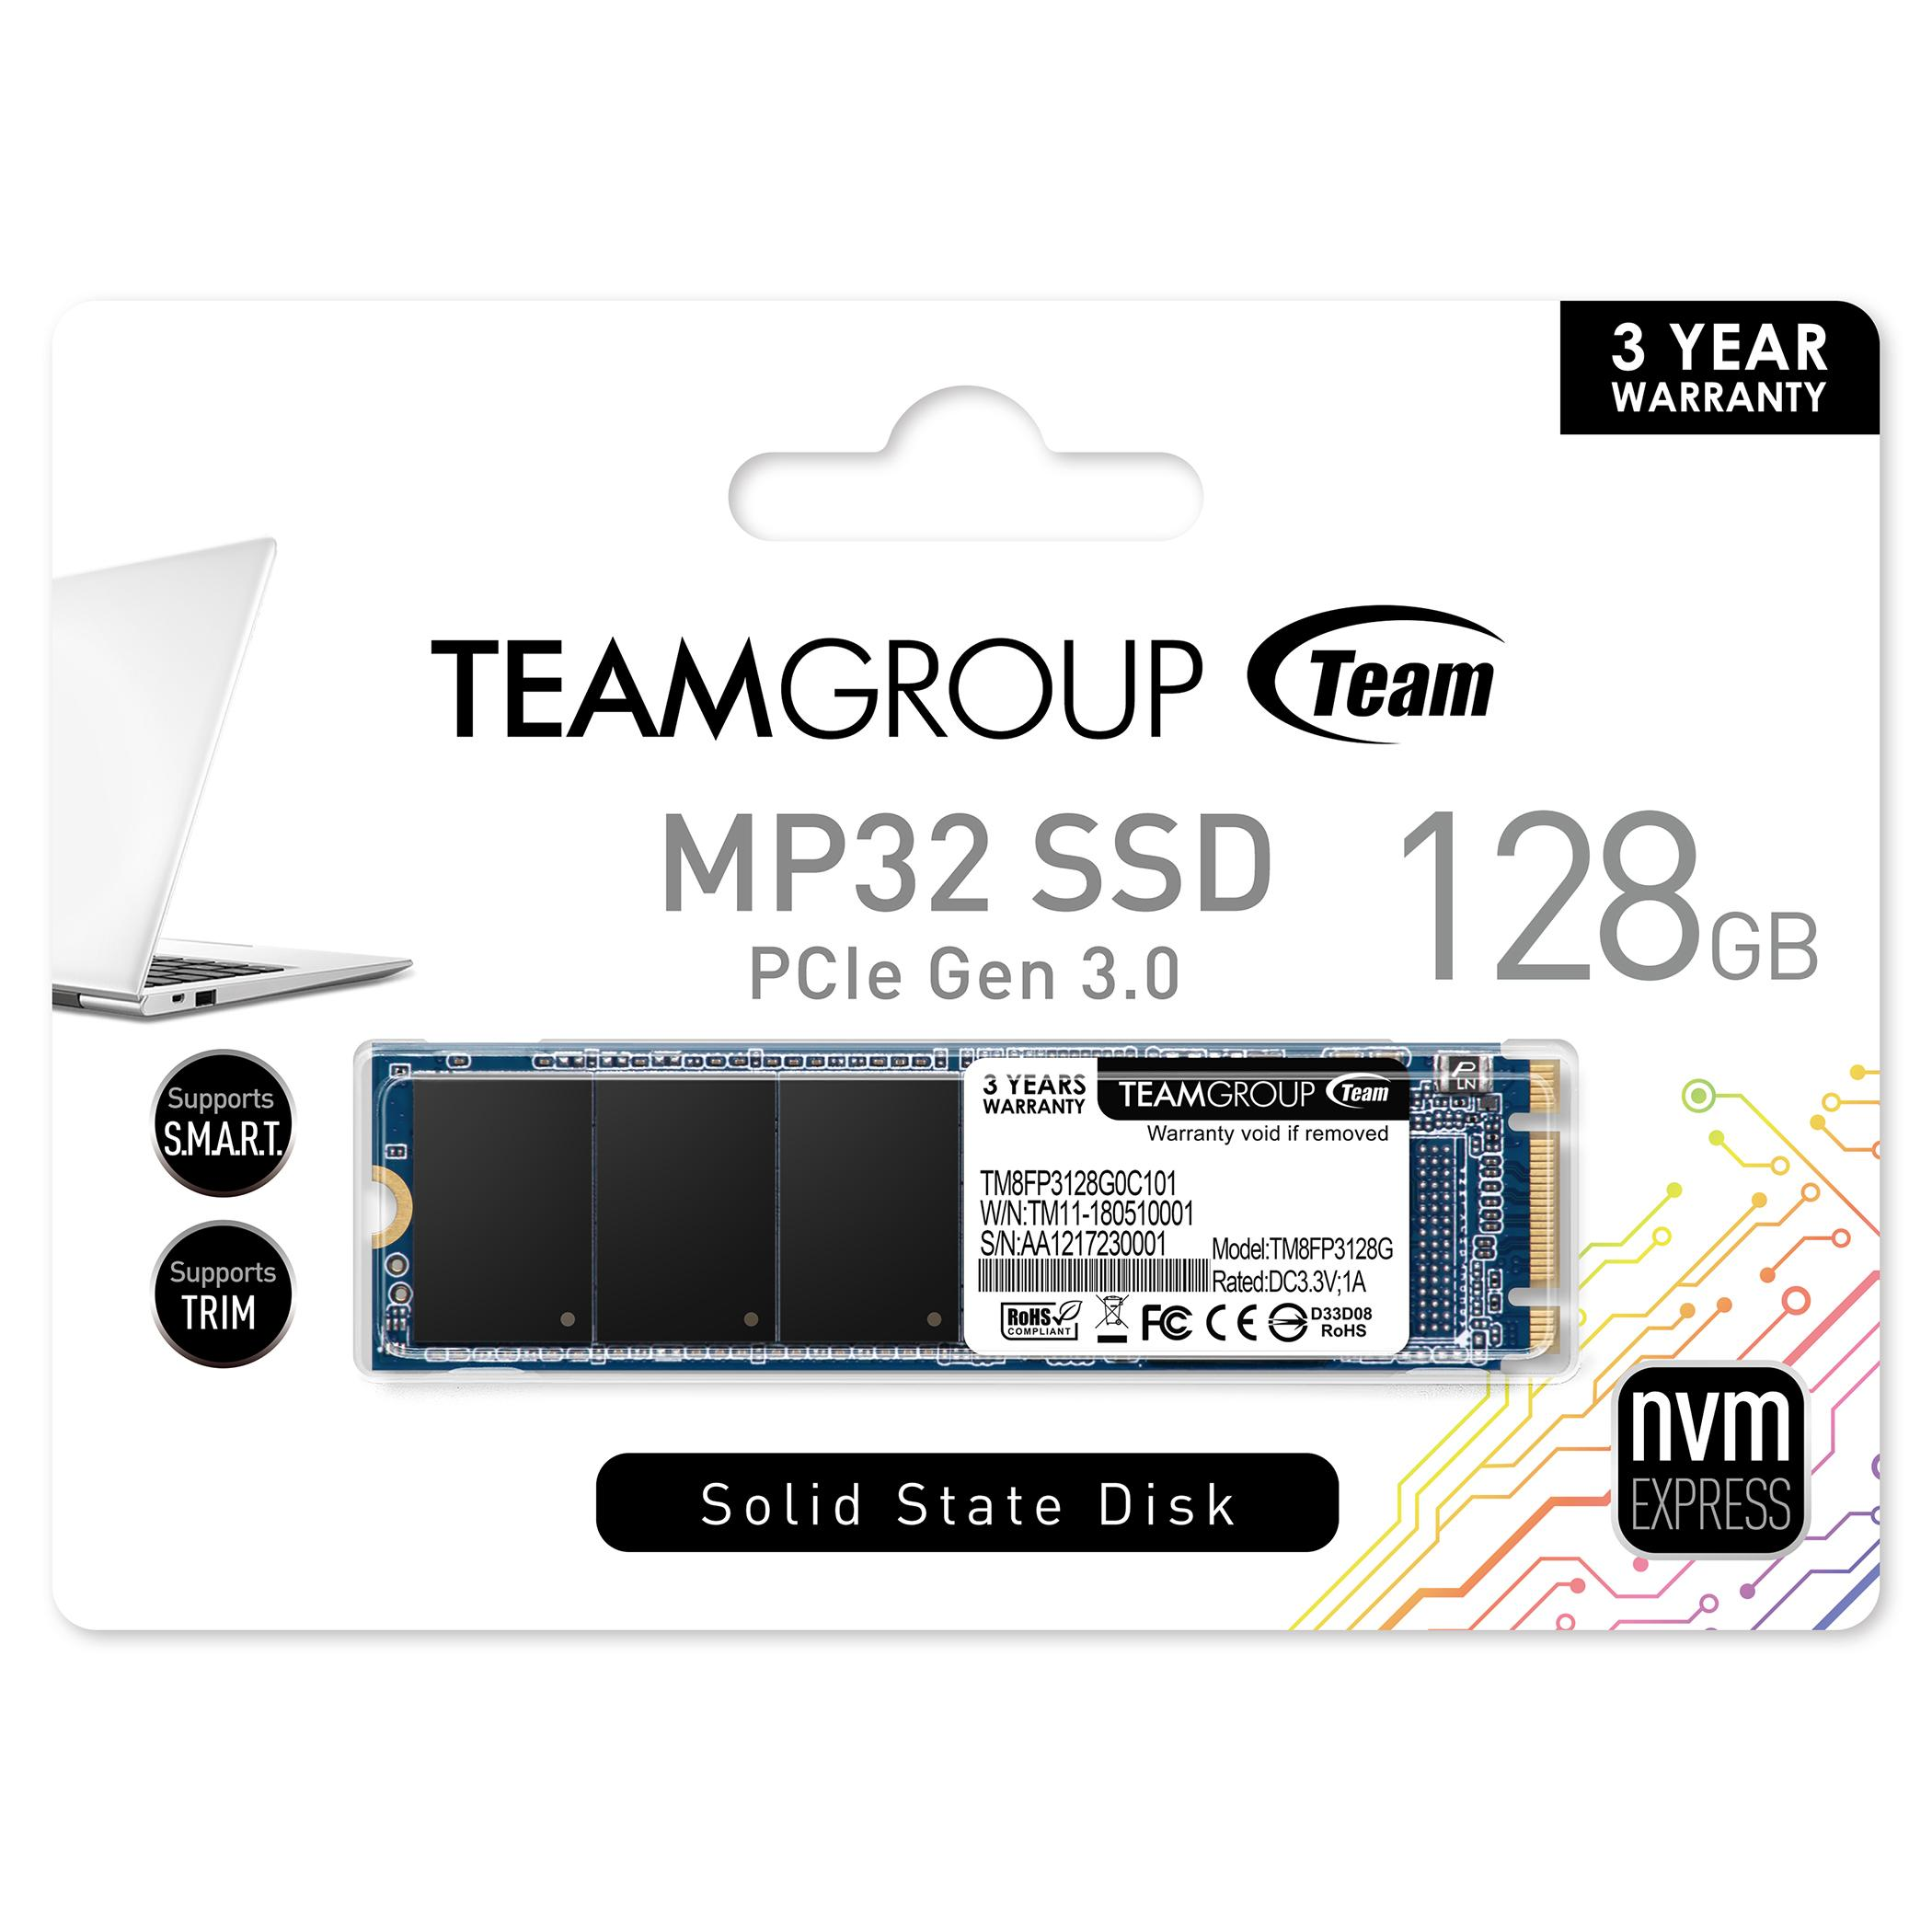 Solid State Drive (SSD) Team Group MP32 M.2 2280 128GB PCI-e 3.0 x2 NVMe